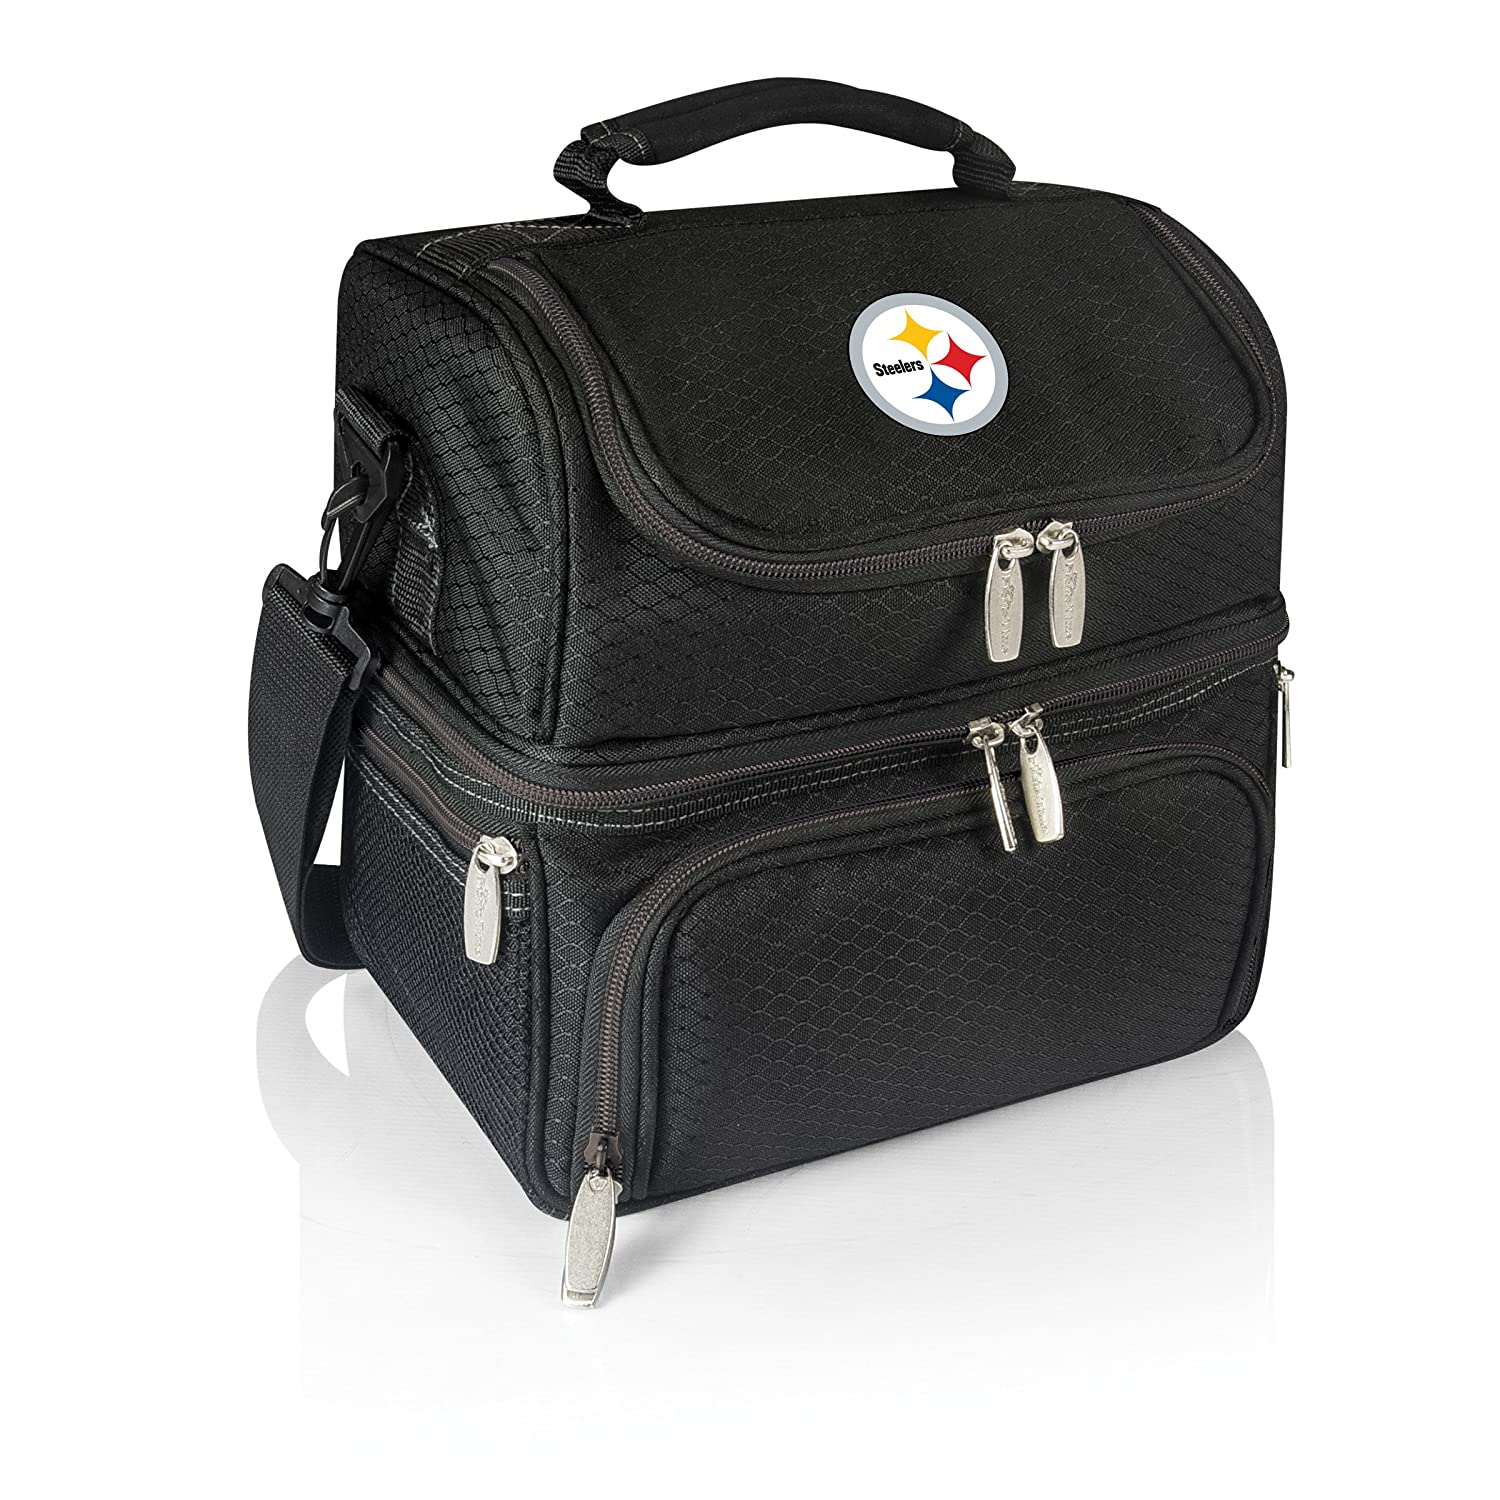 Black PICNIC TIME NFL Pittsburgh Steelers Pranzo Insulated Lunch Tote with Service for One